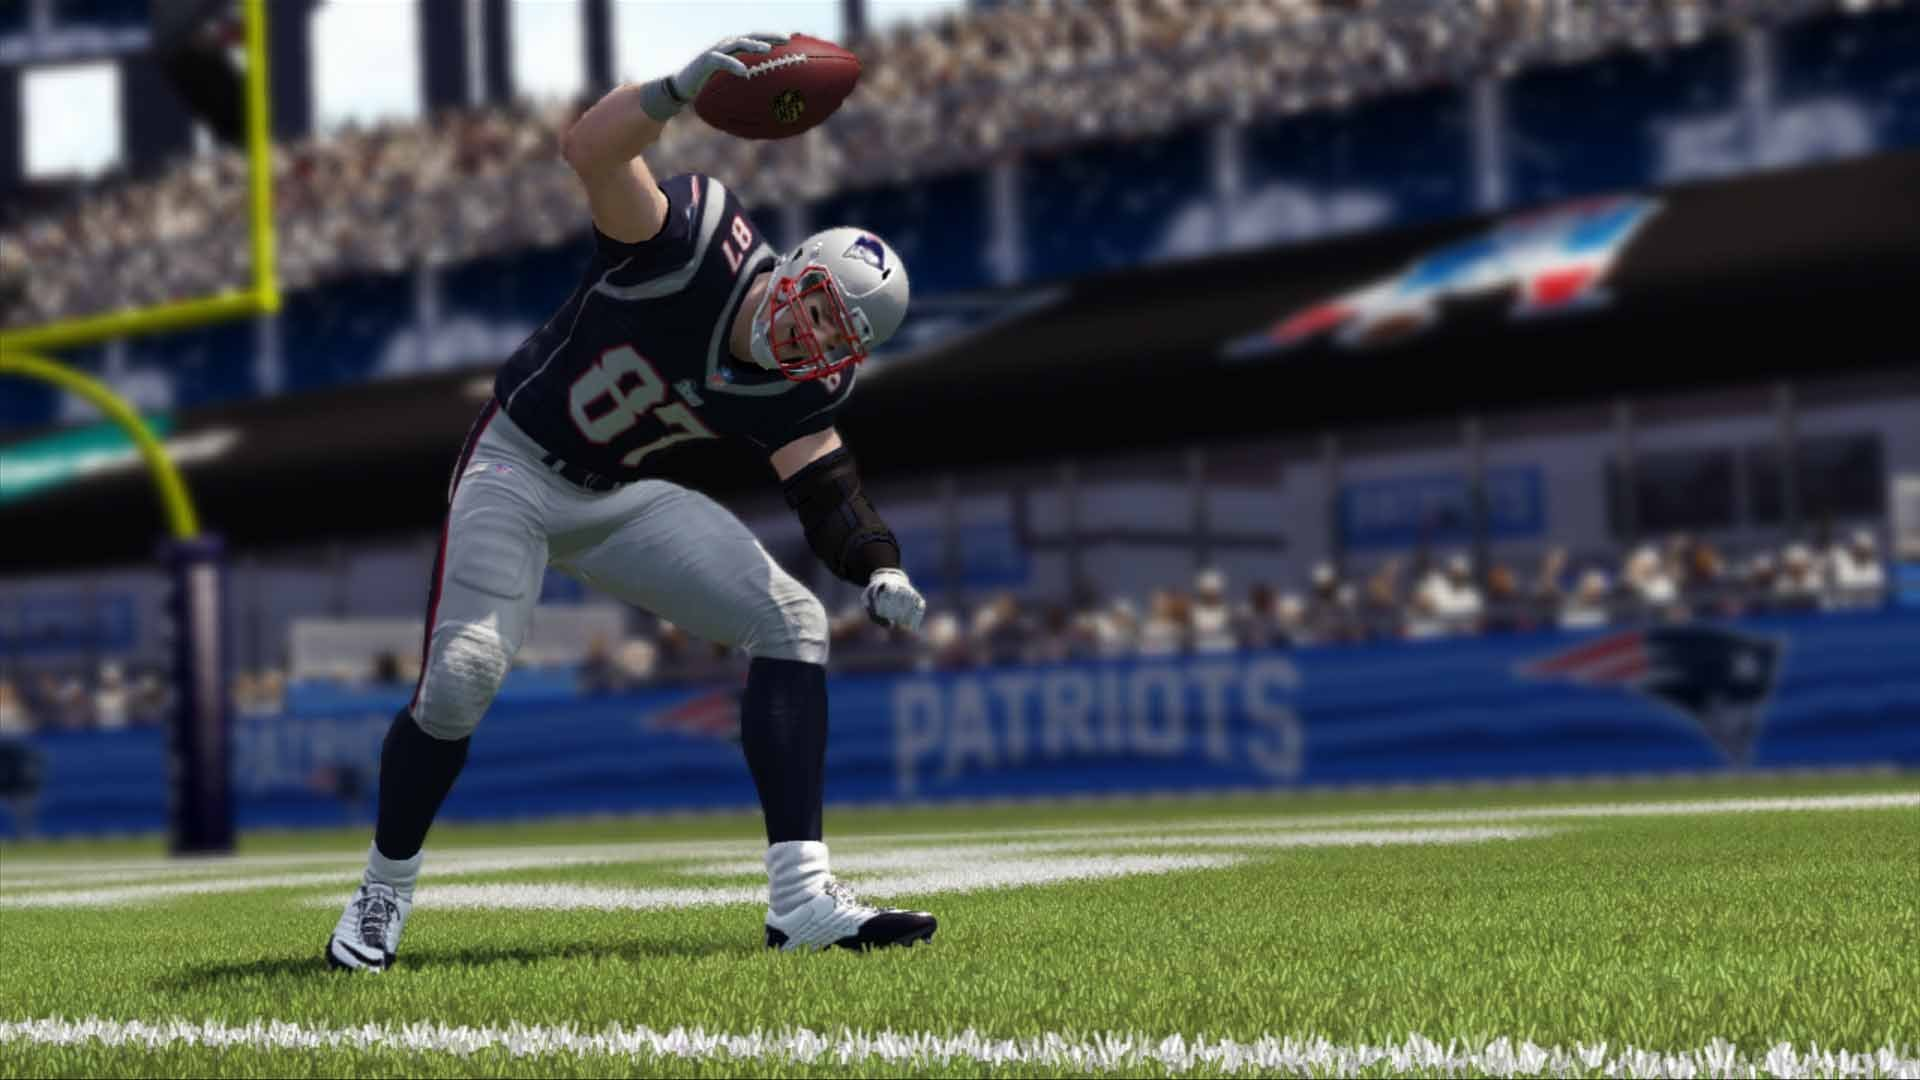 Madden NFL 17 - Standard Edition - PlayStation 4 by Electronic Arts (Image #1)